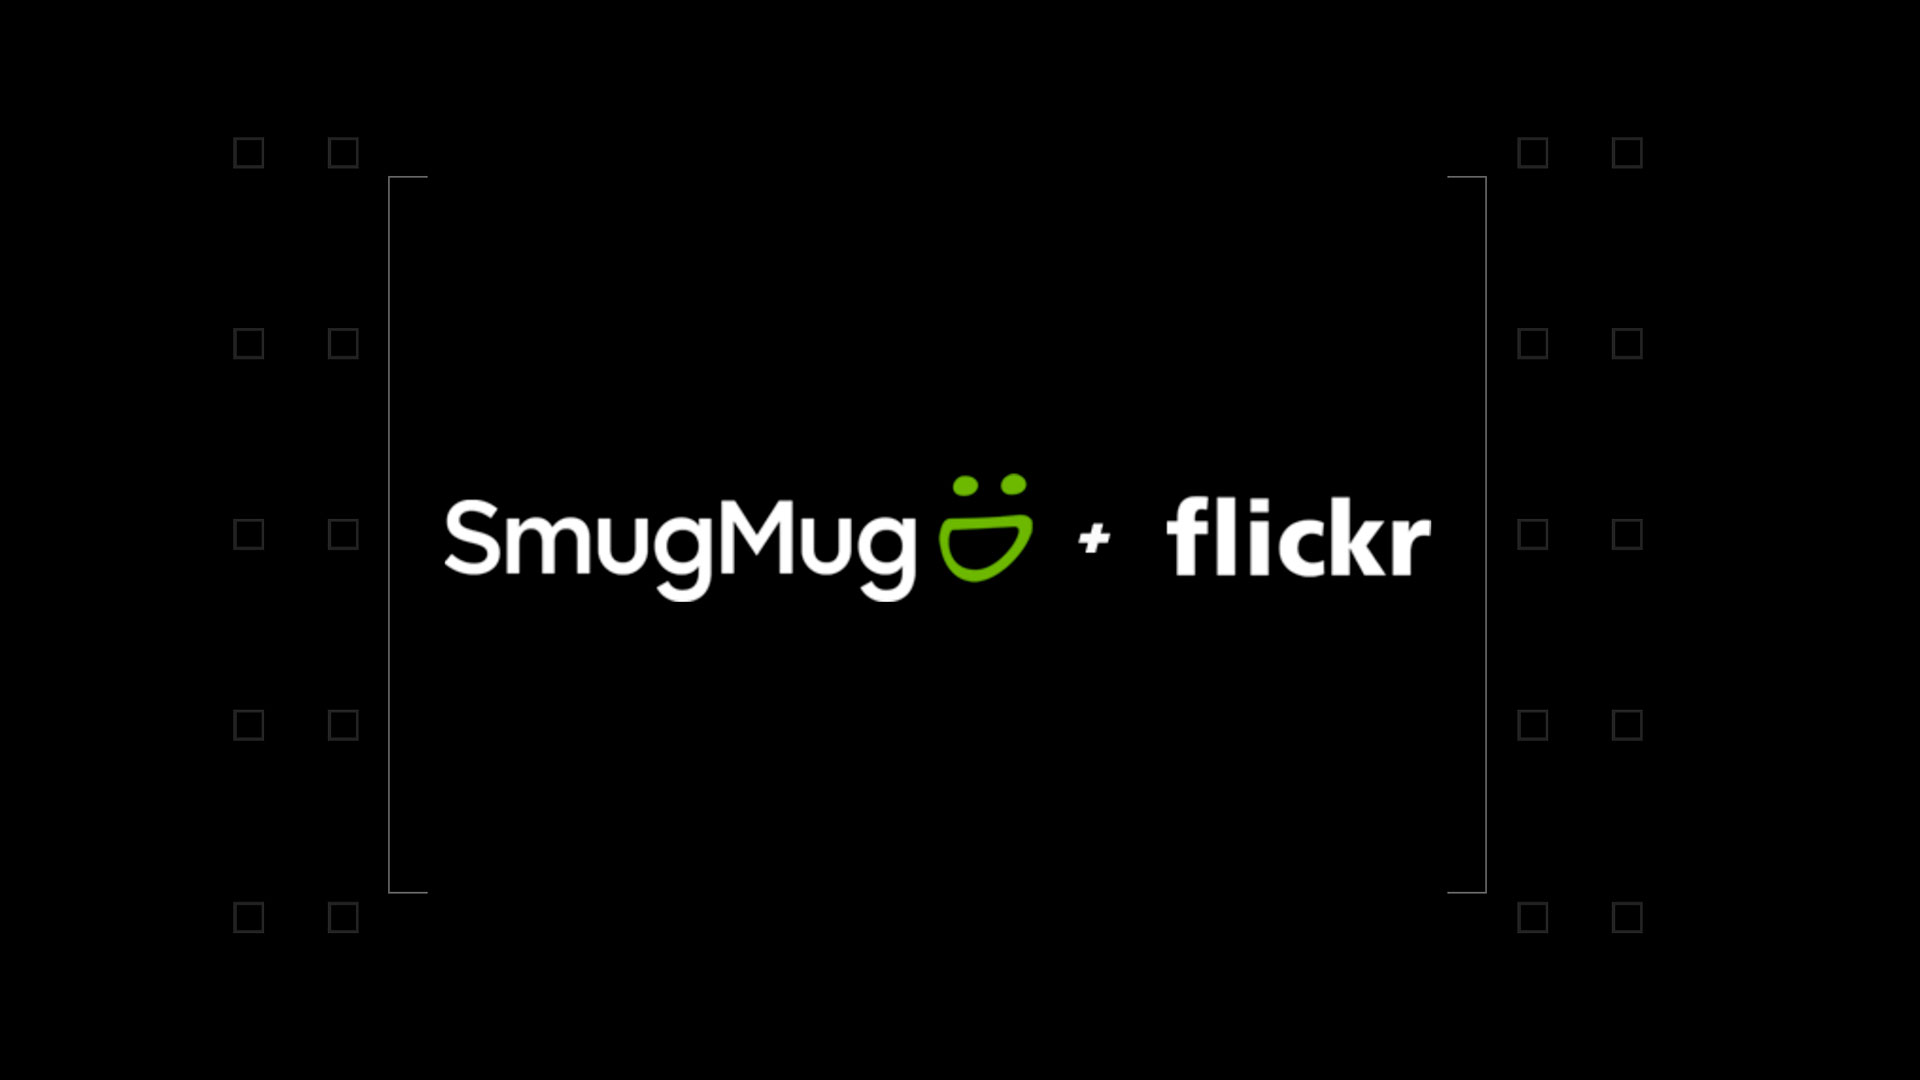 smugmug-flickr2